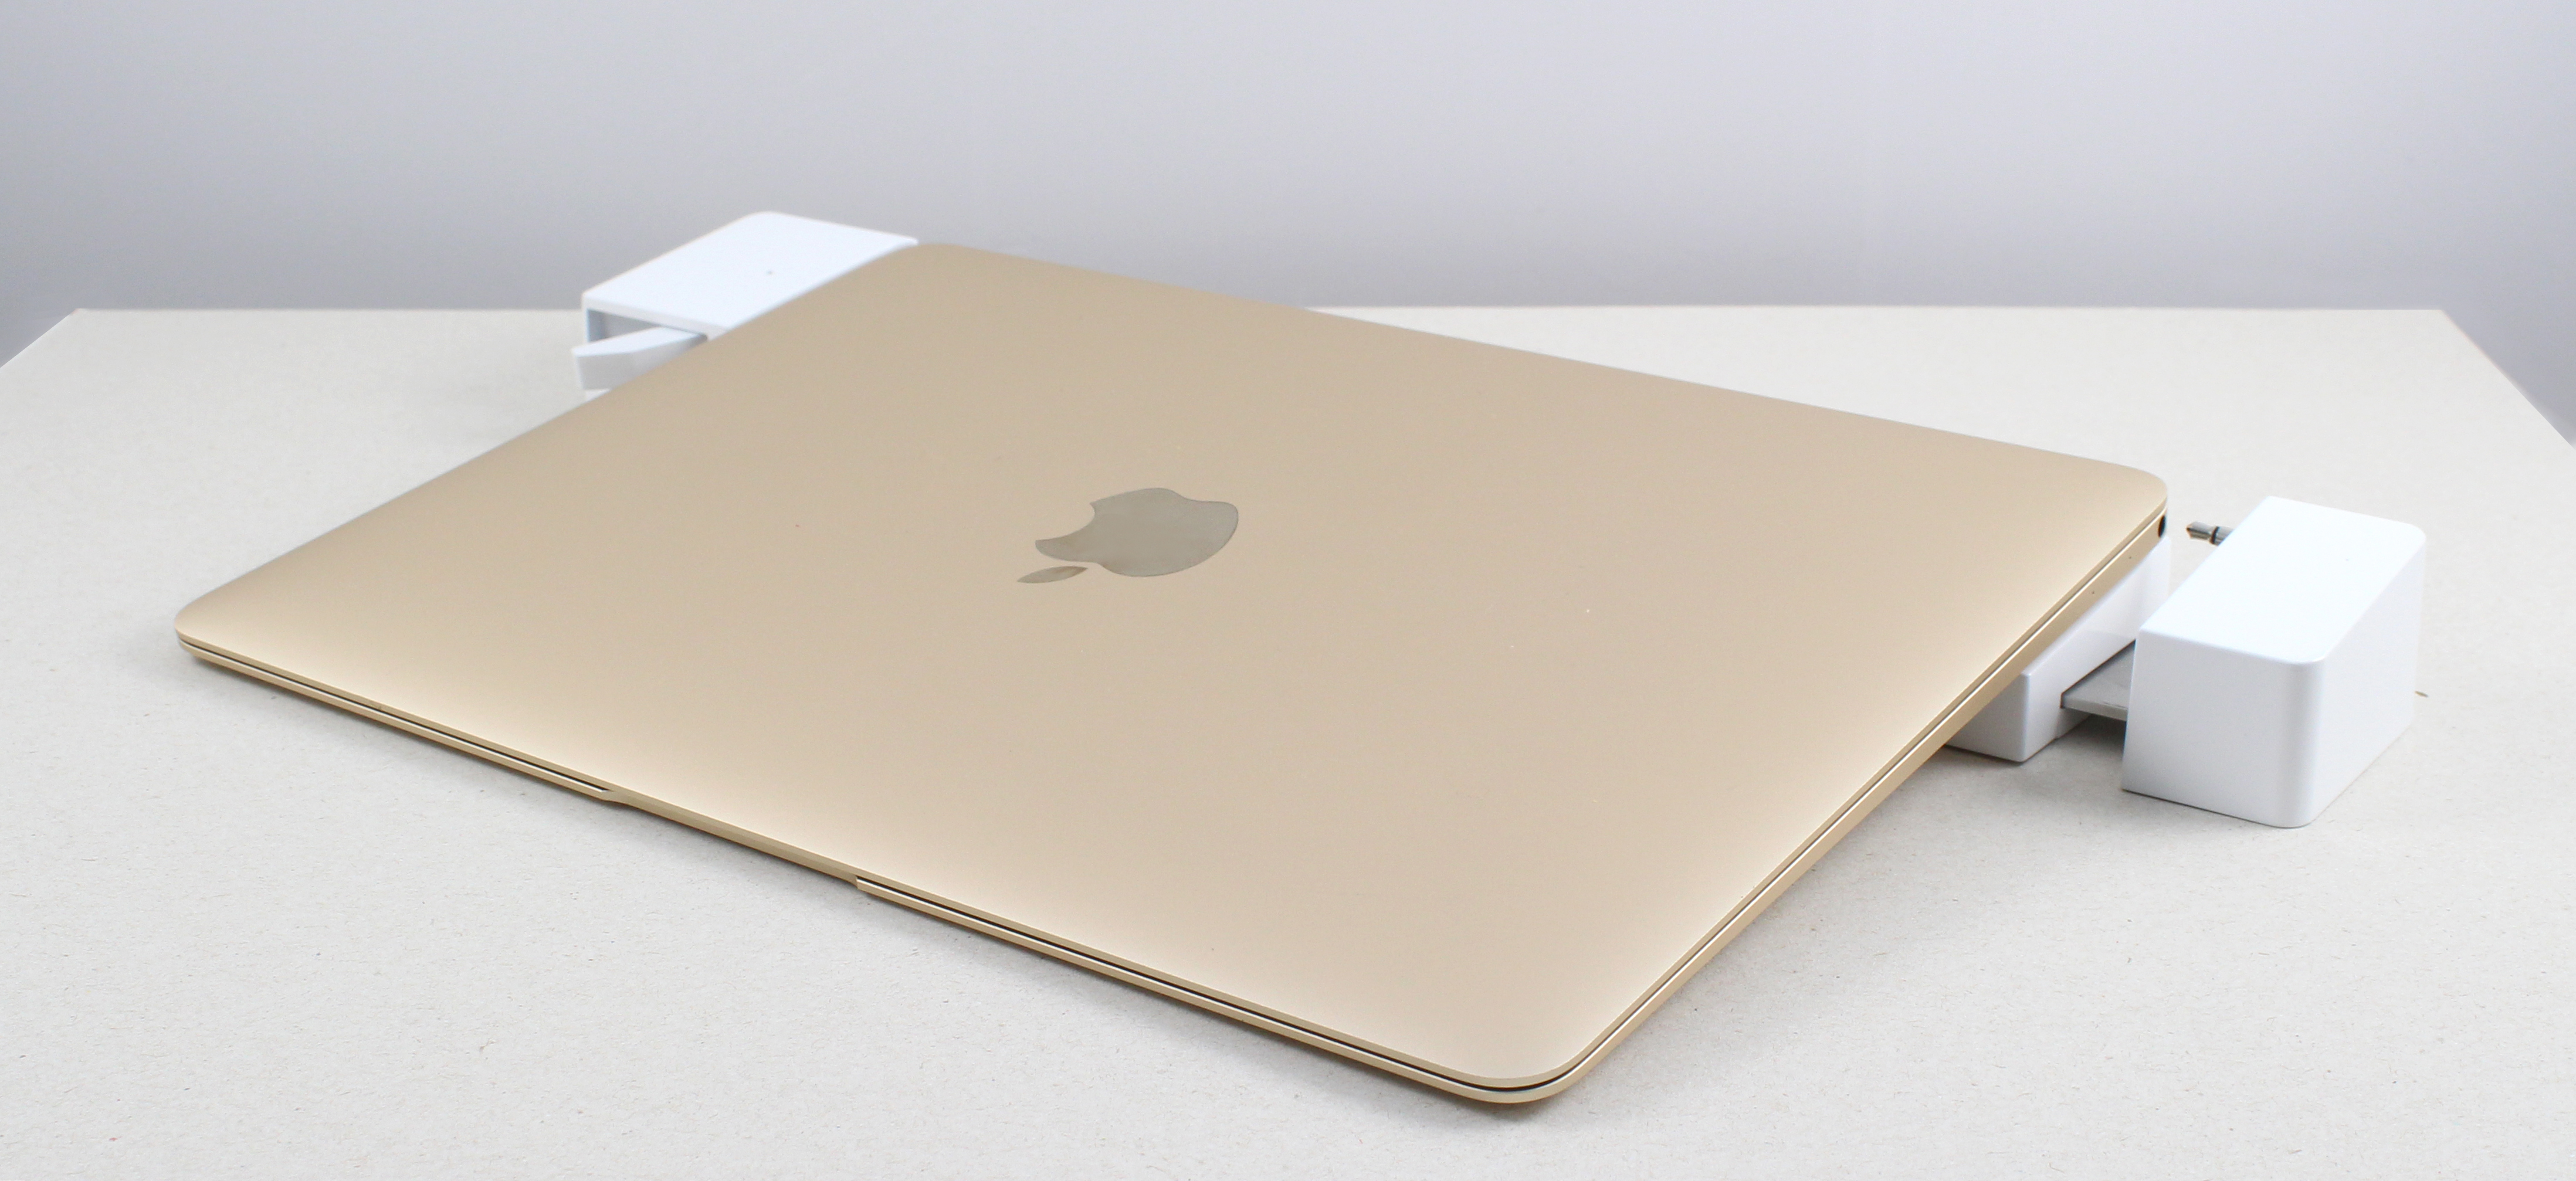 Landingzone Unveiling The 12 Inch Macbook Dock At Ces 2016